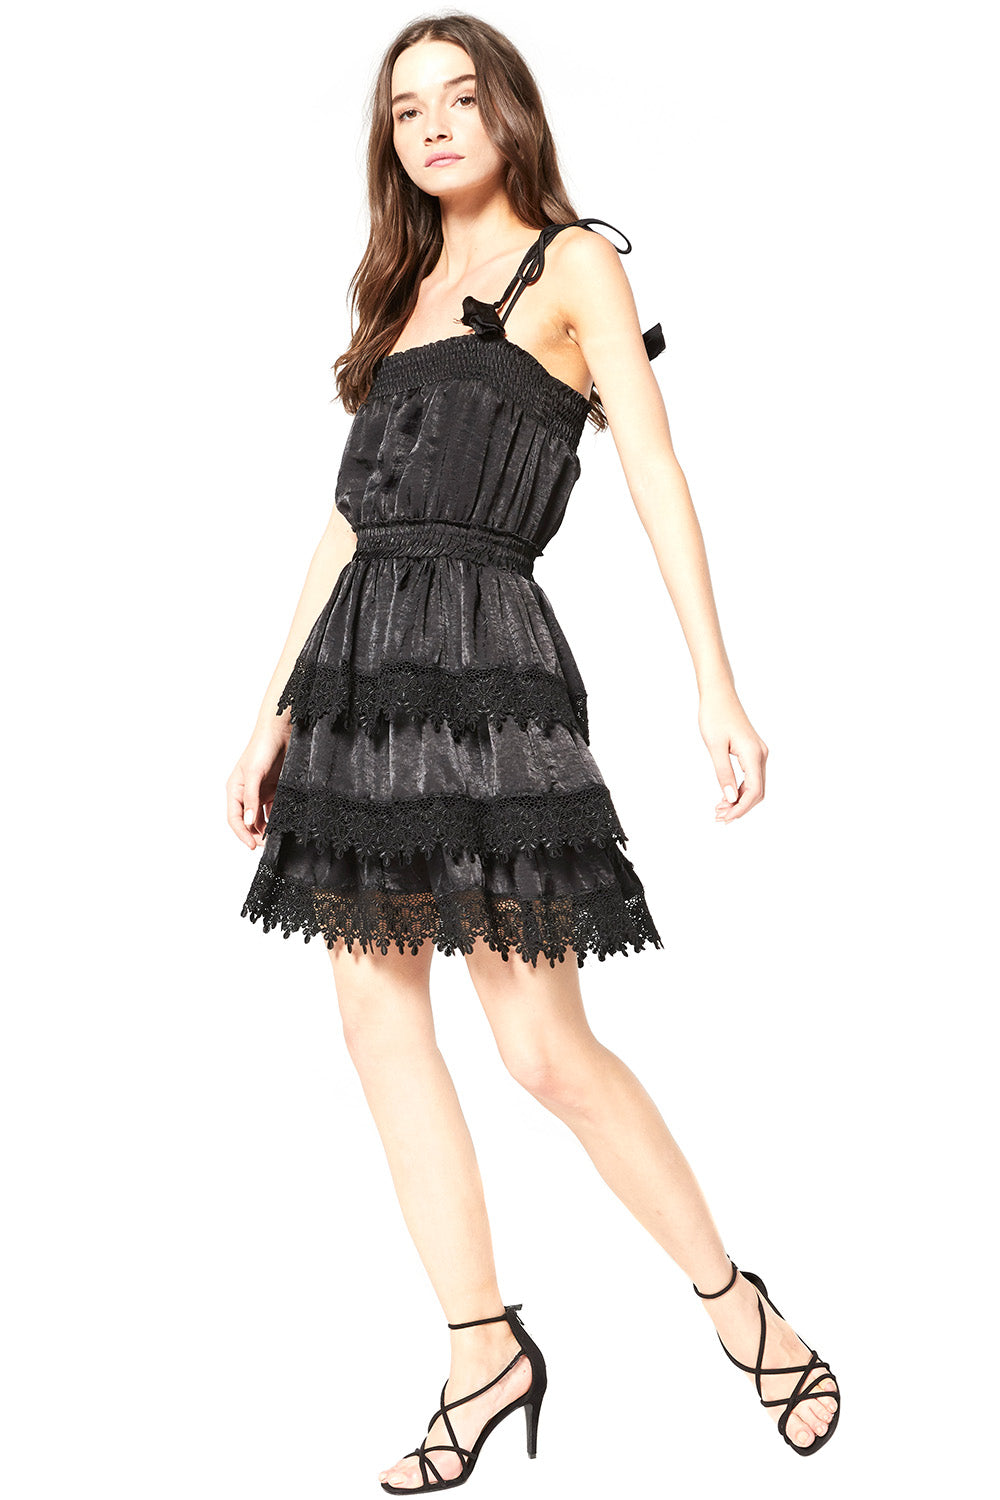 Angeline Dress - MISA Los Angeles